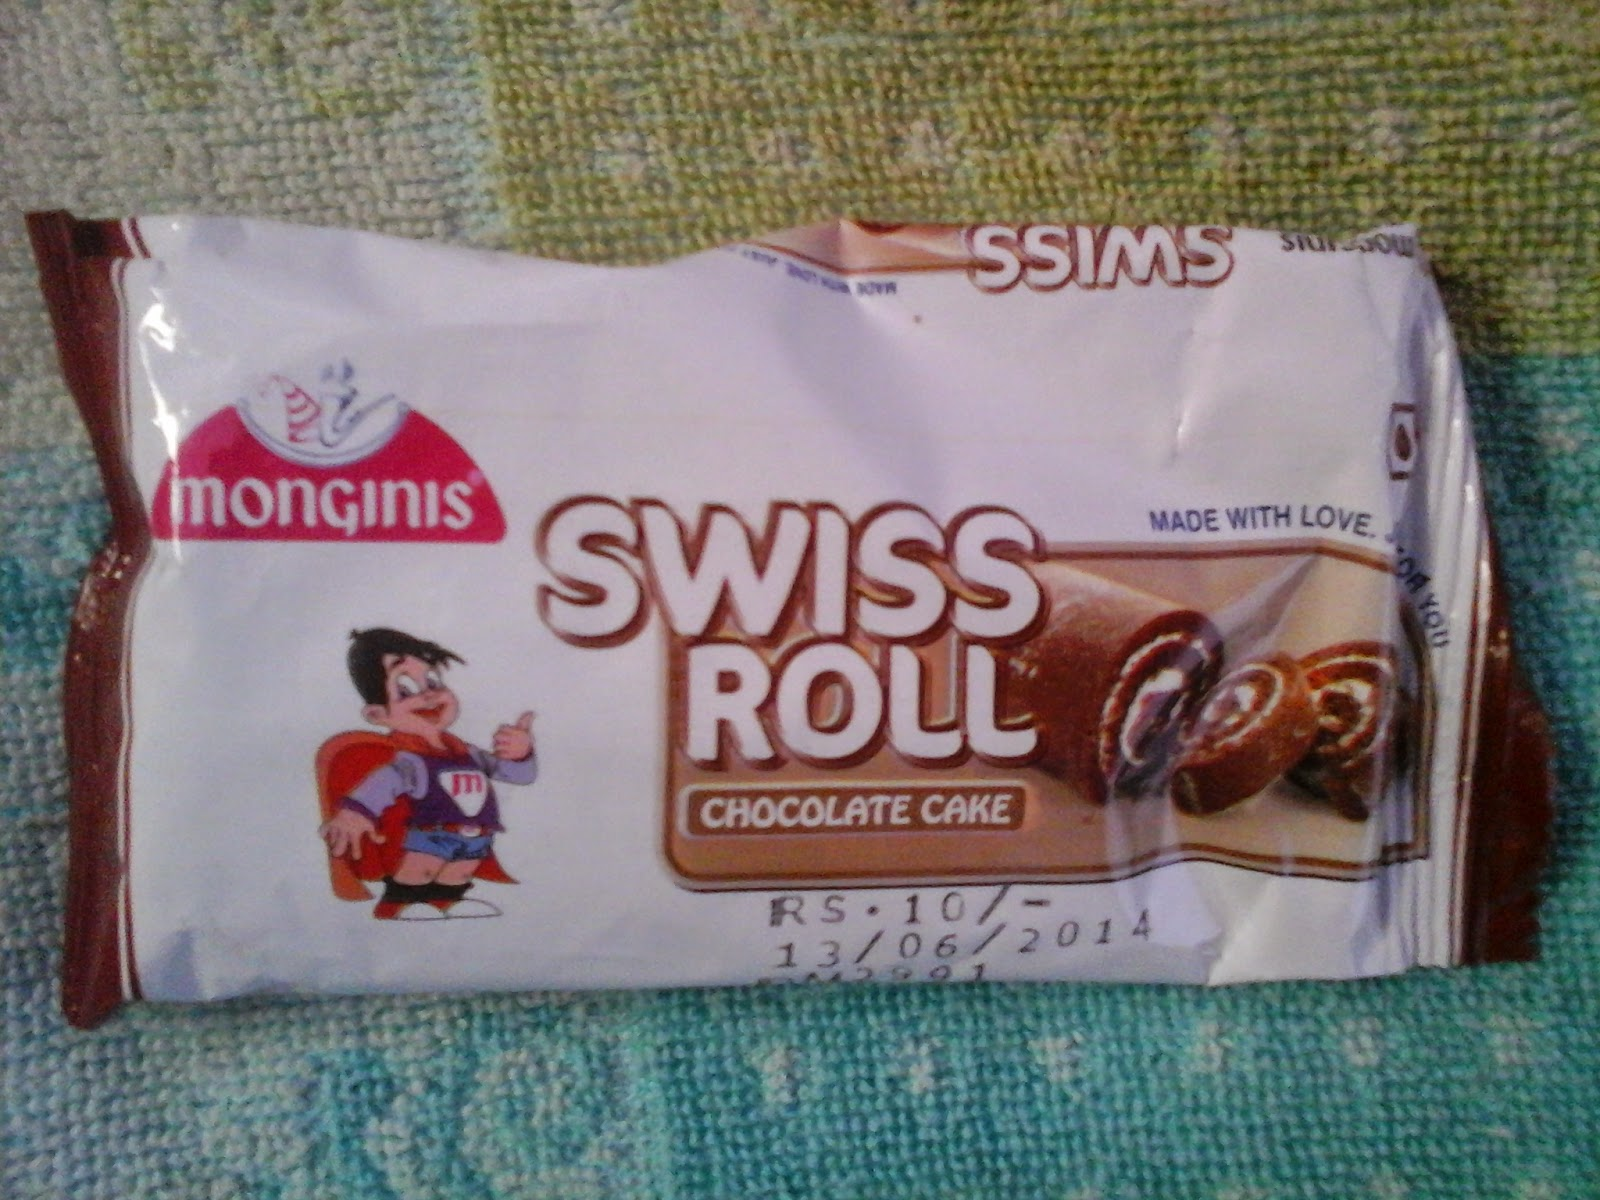 bakery industry  attractive packaging and advent of new indulgent middle income group category swiss rolls could be money minting products for large scale manufacturers